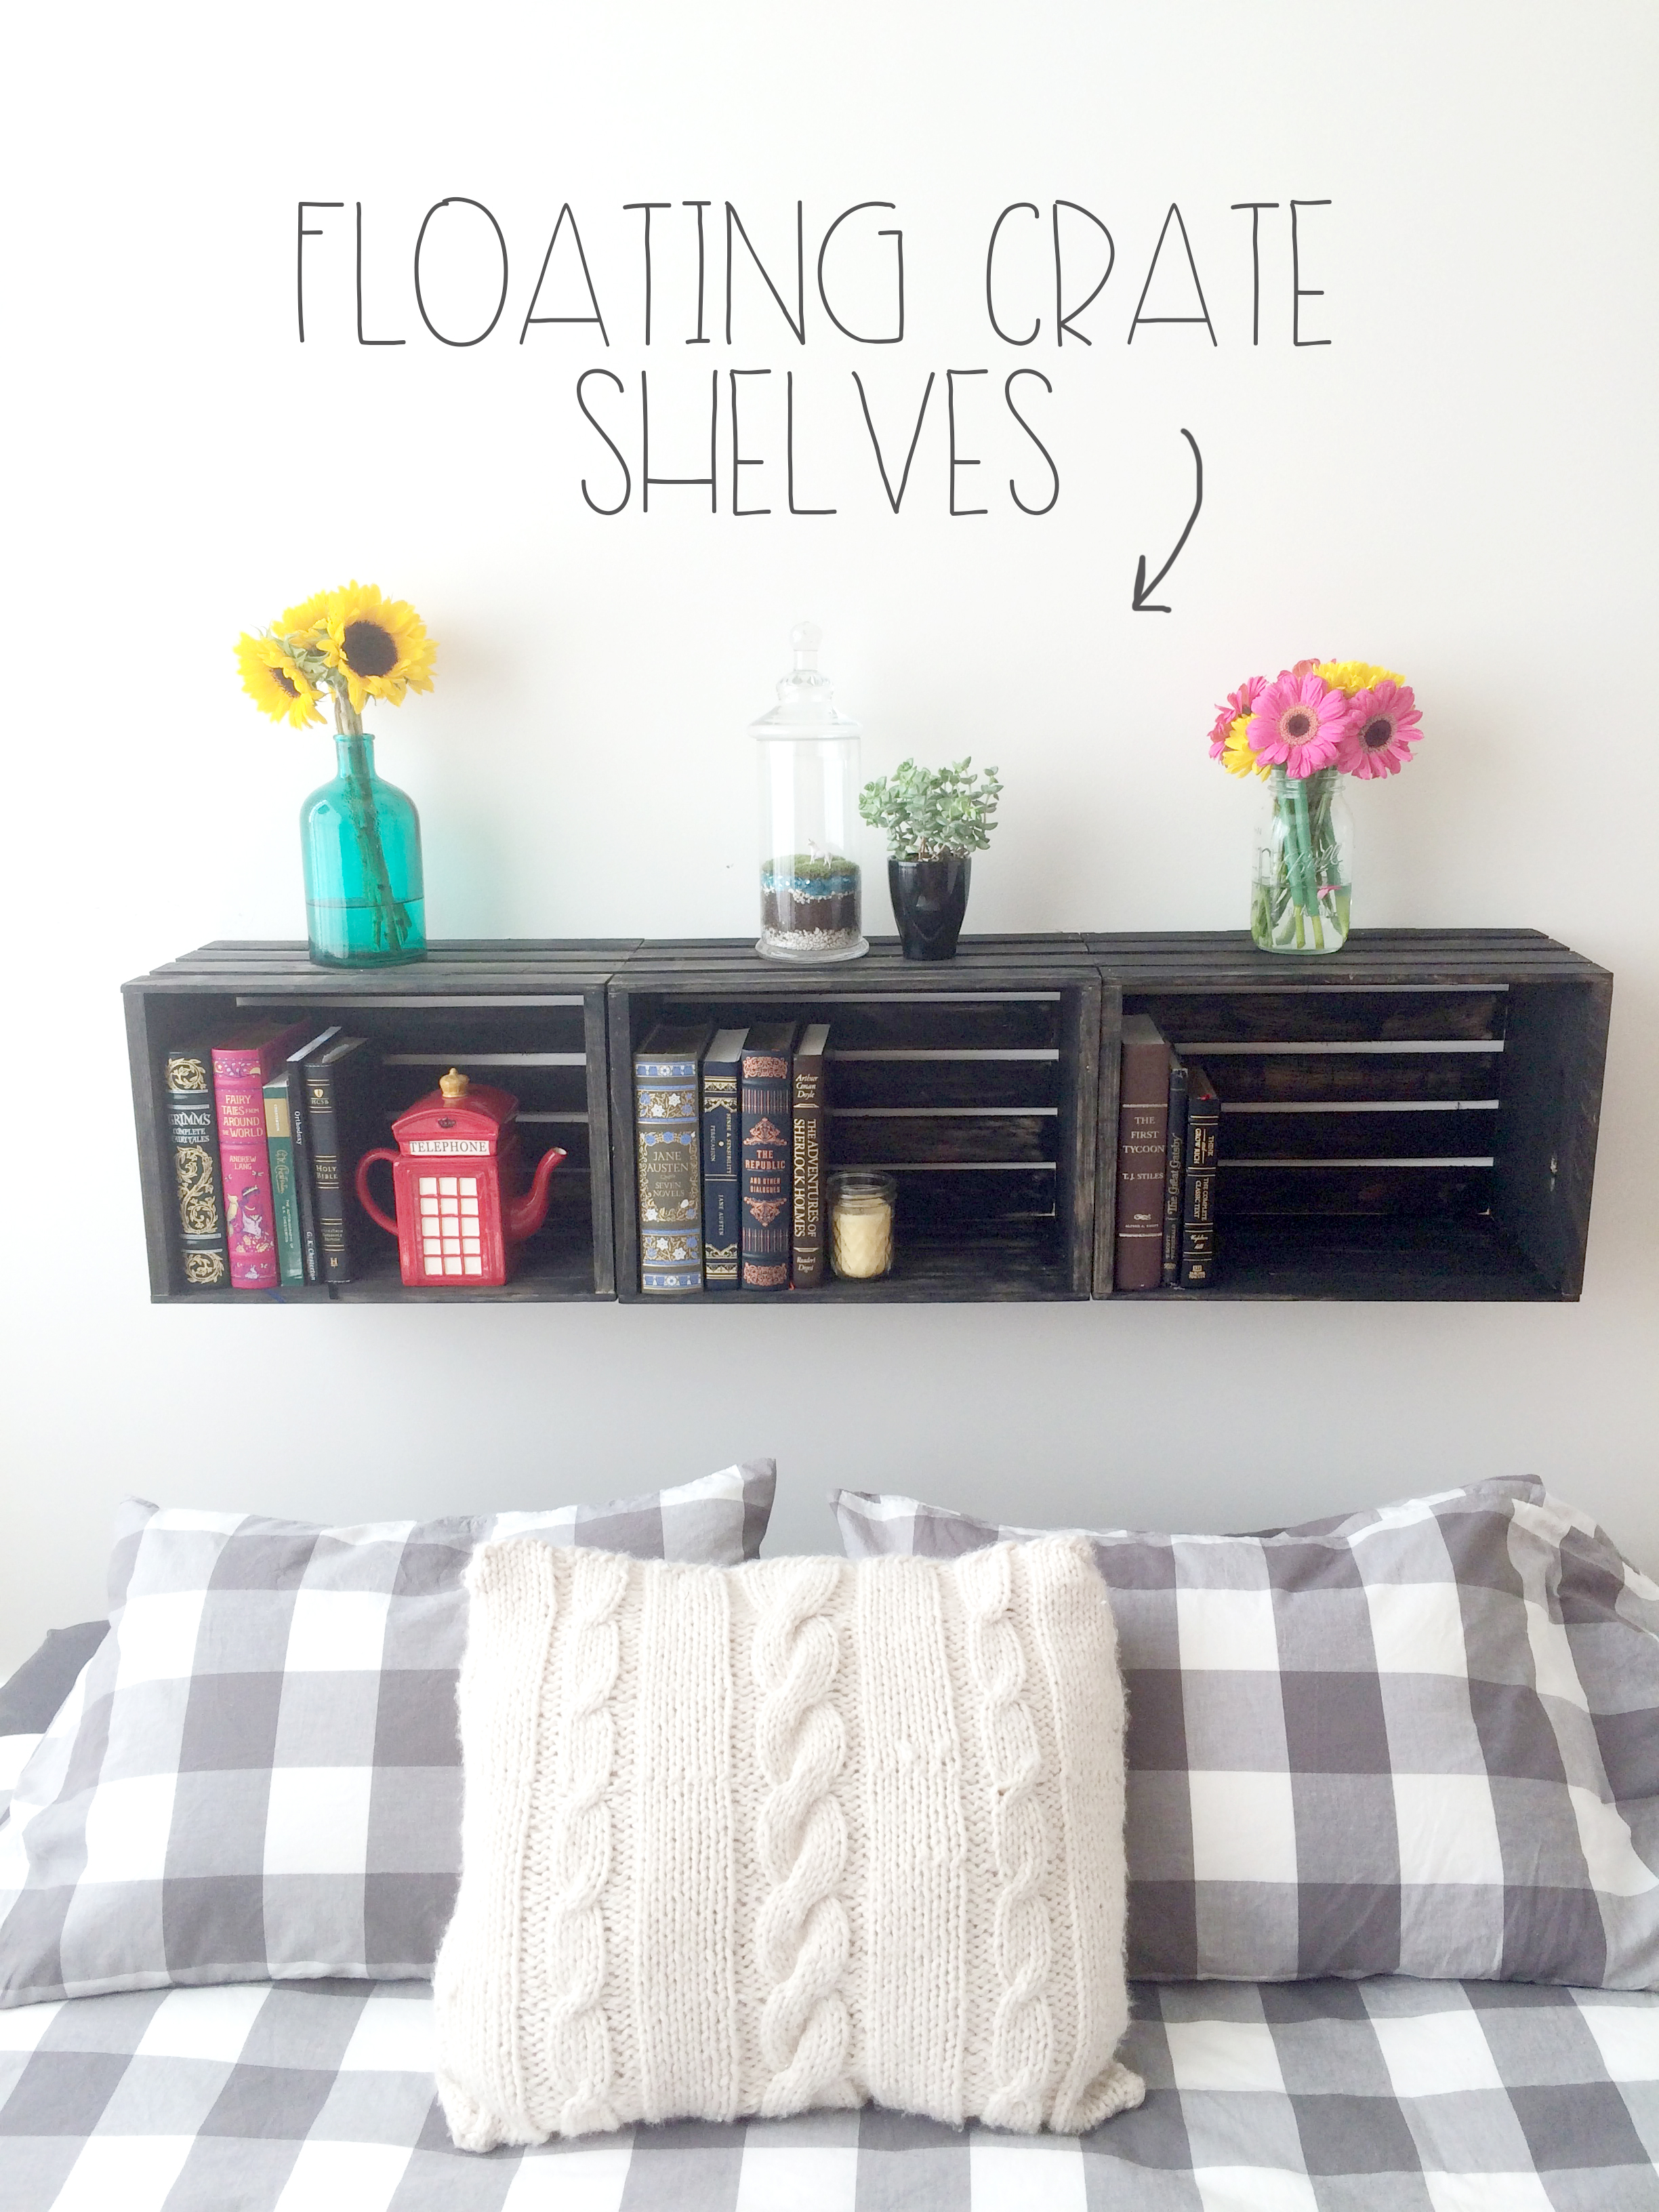 Floating Crate Shelves -Featured | Red Autumn blog